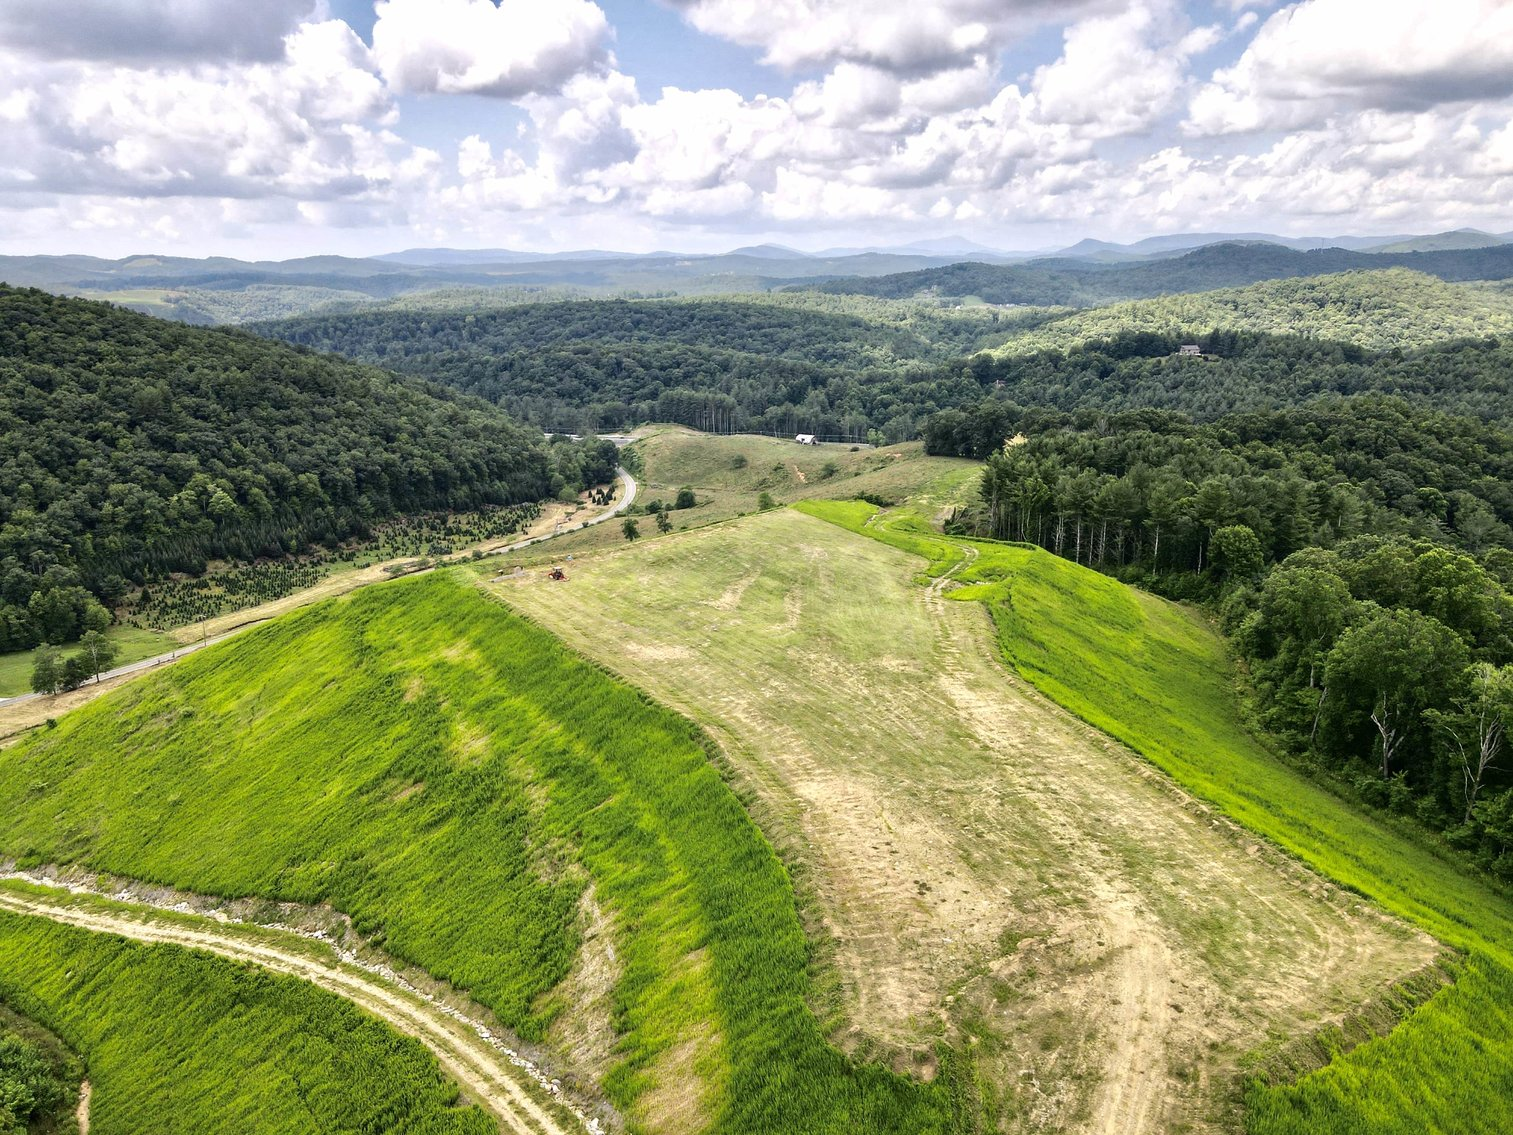 Entire Ashe County Mountain and Surrounding Acreage